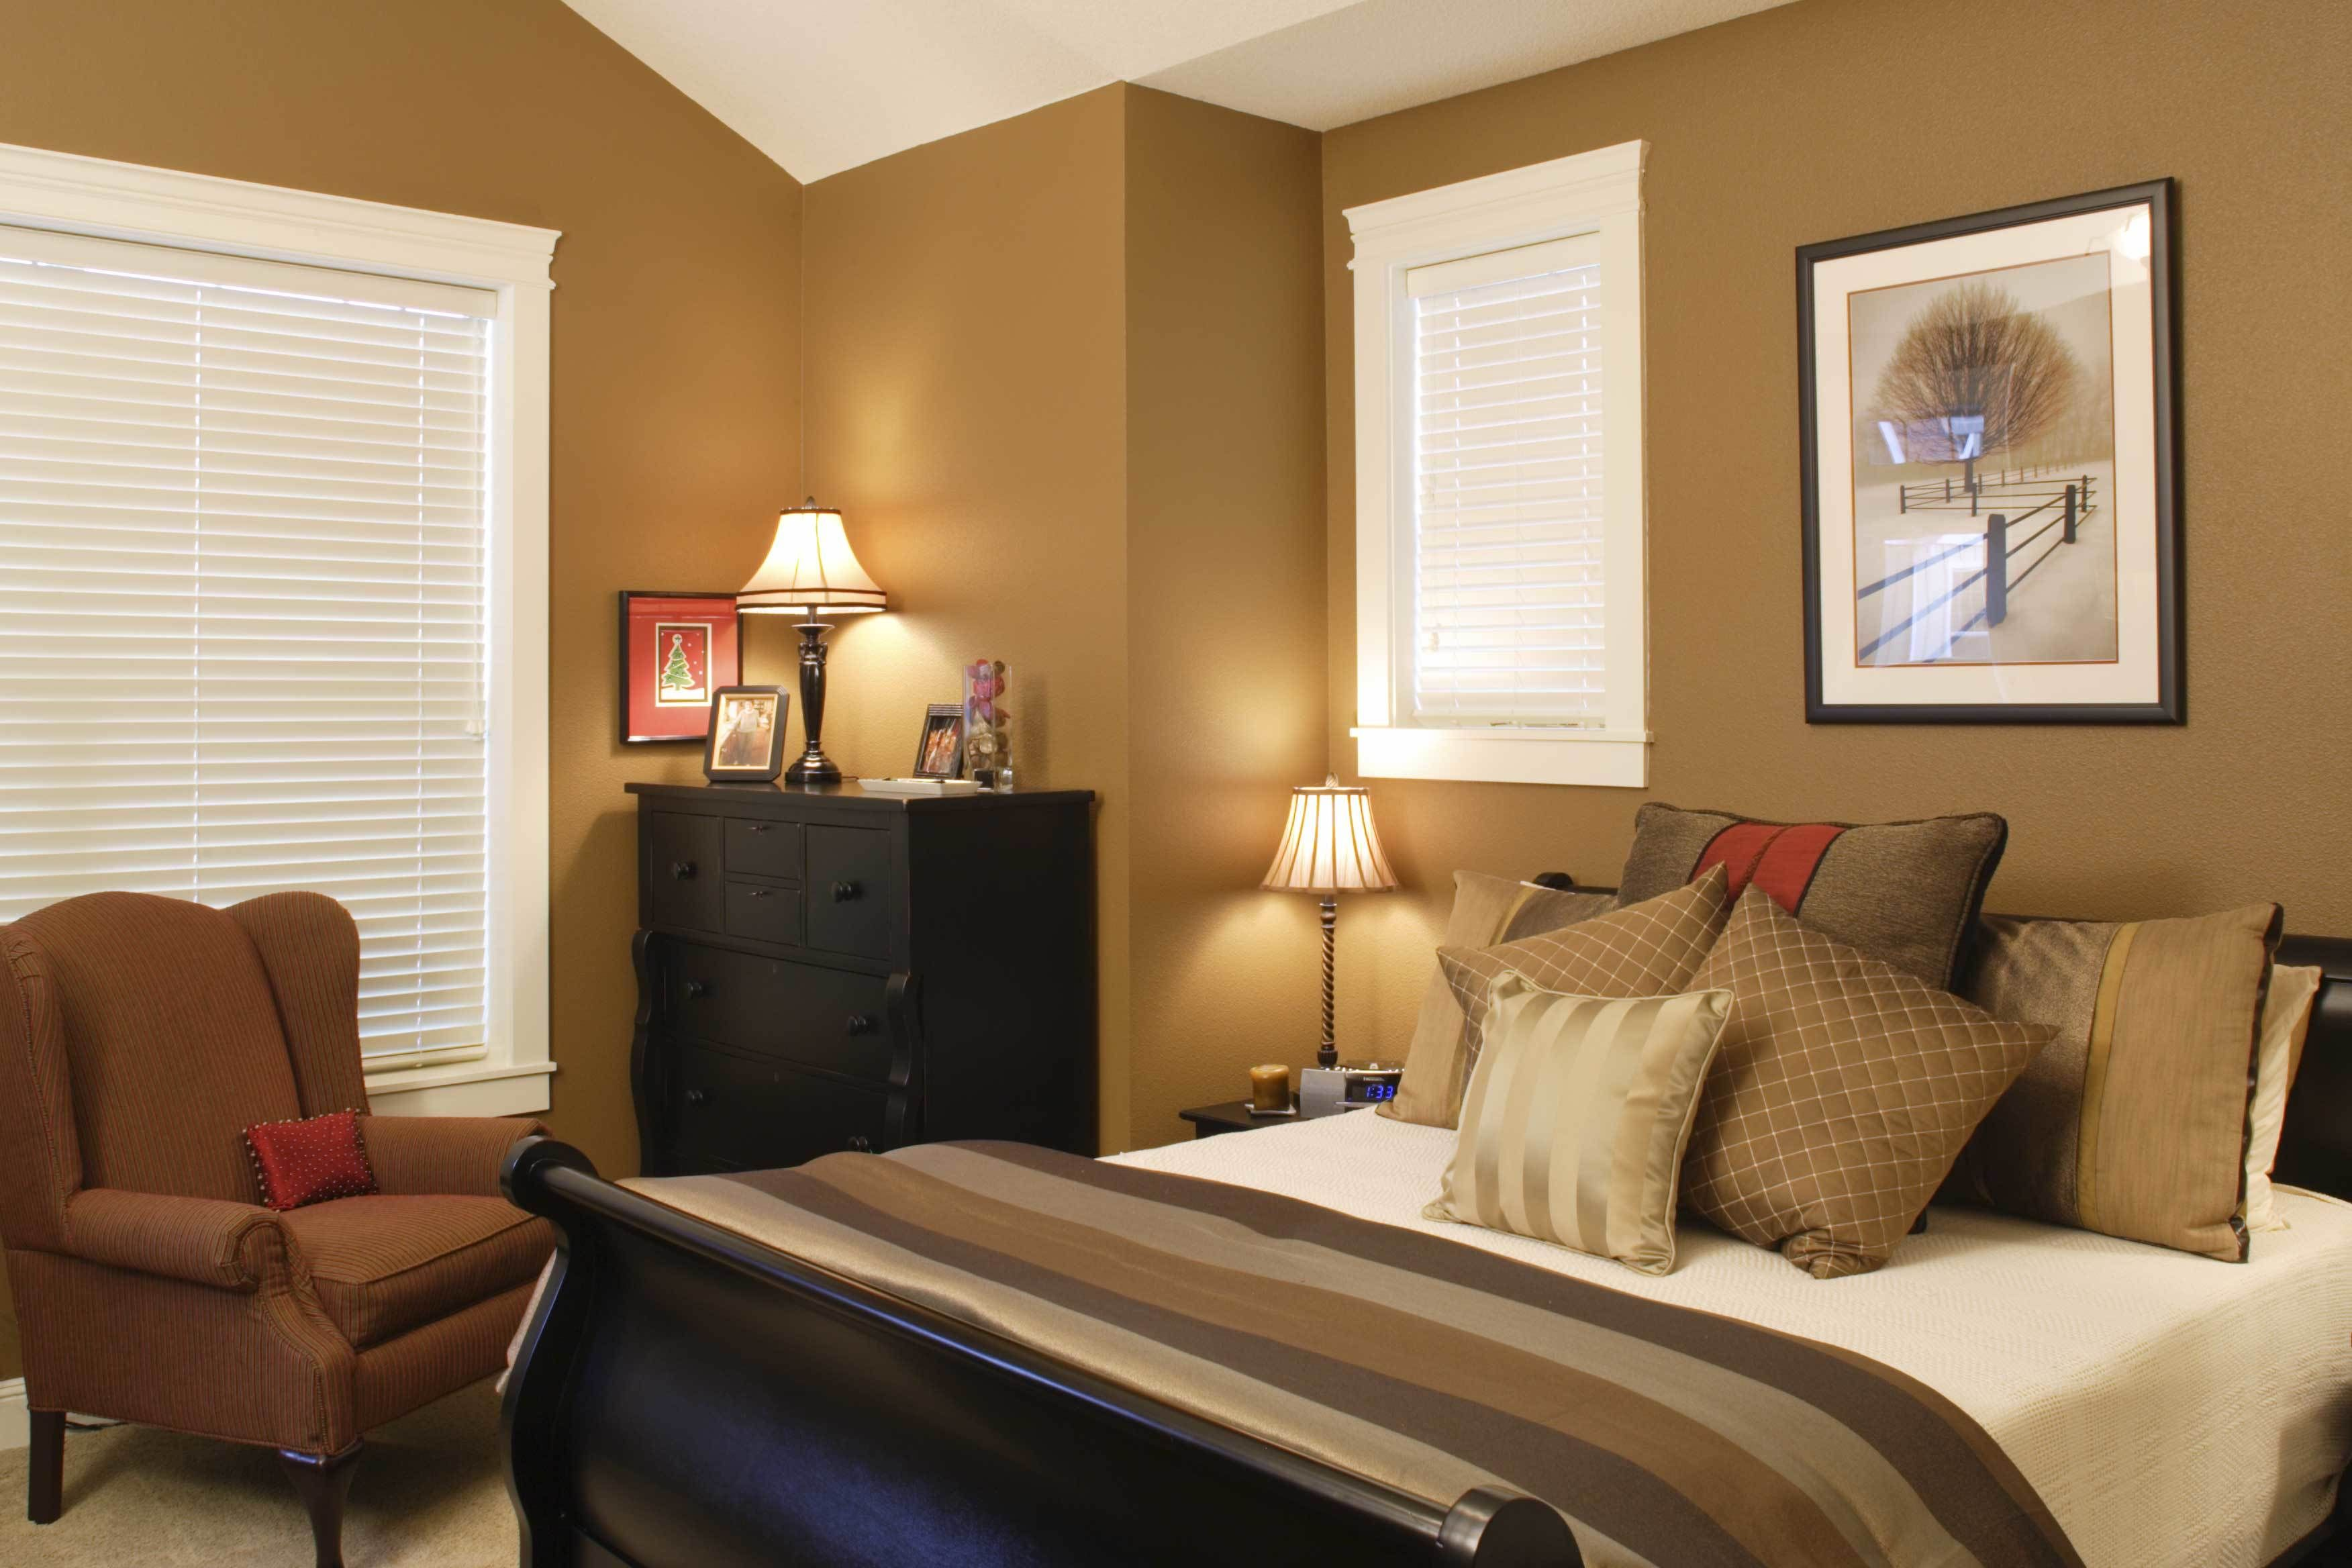 Paint Color Bedrooms Which Paint Color Goes With Brown Furniture White And Camel